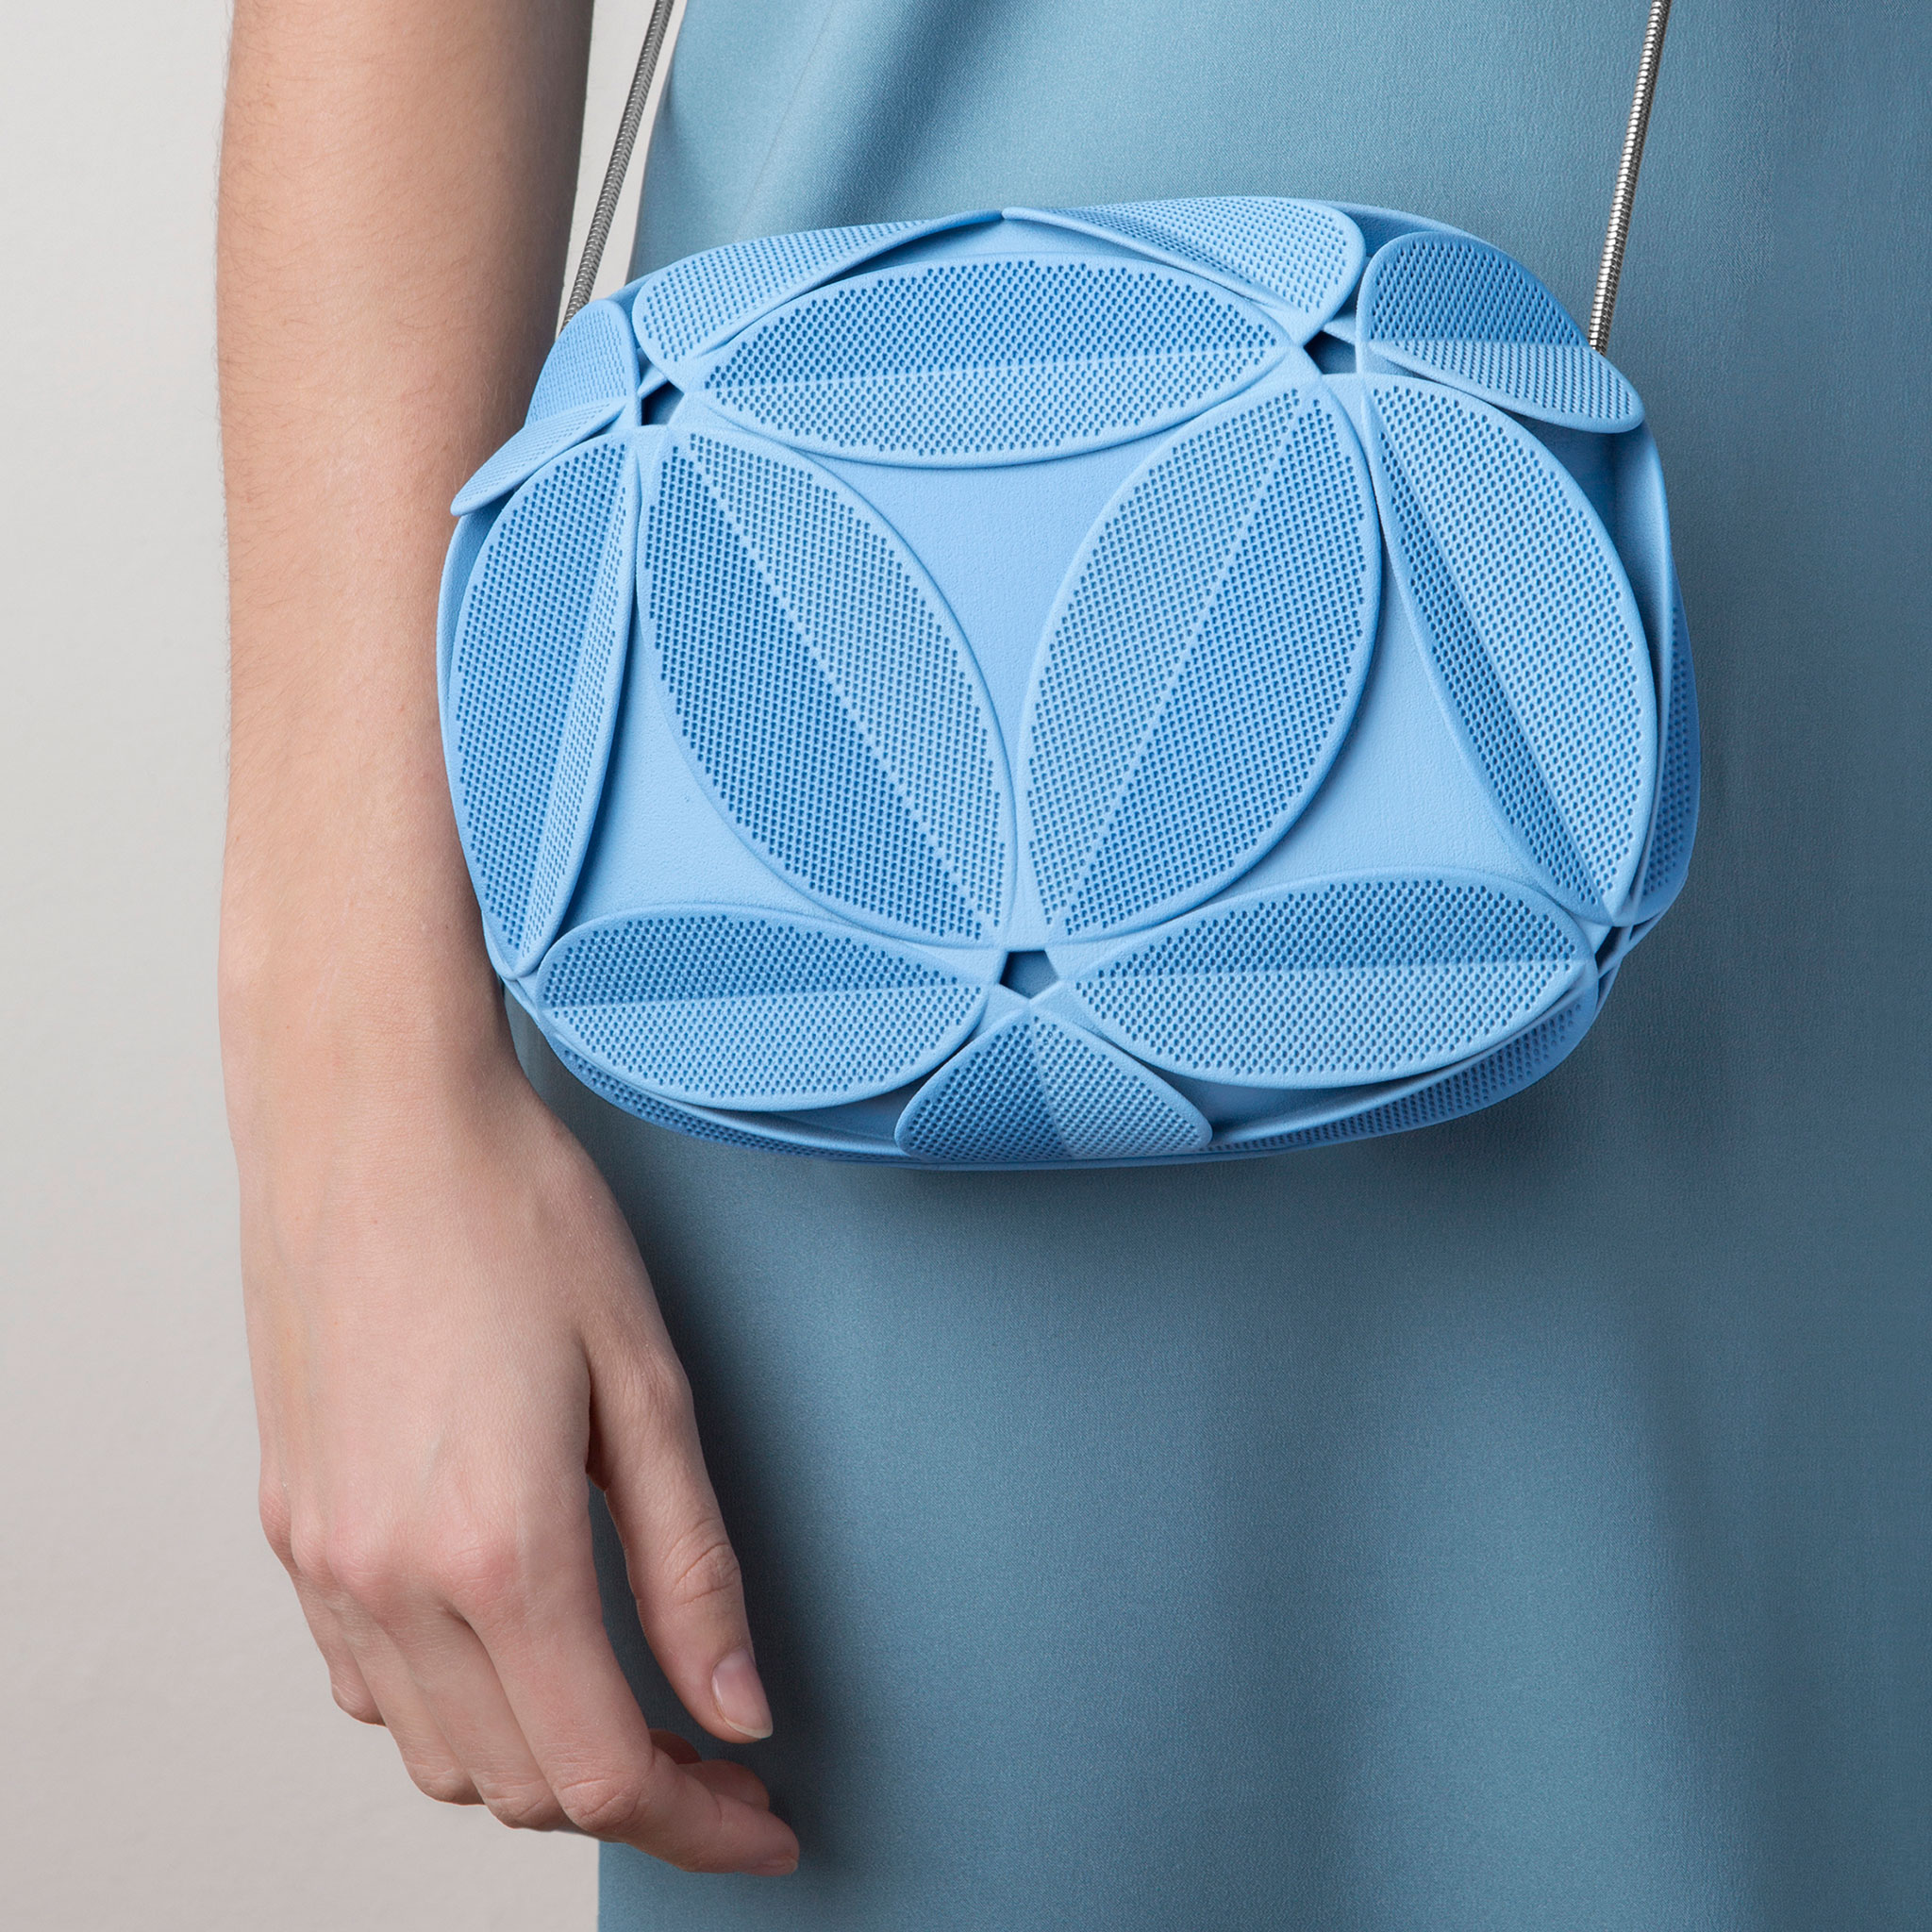 Ivy-3D-Printed-Clutch-Maison-203-04